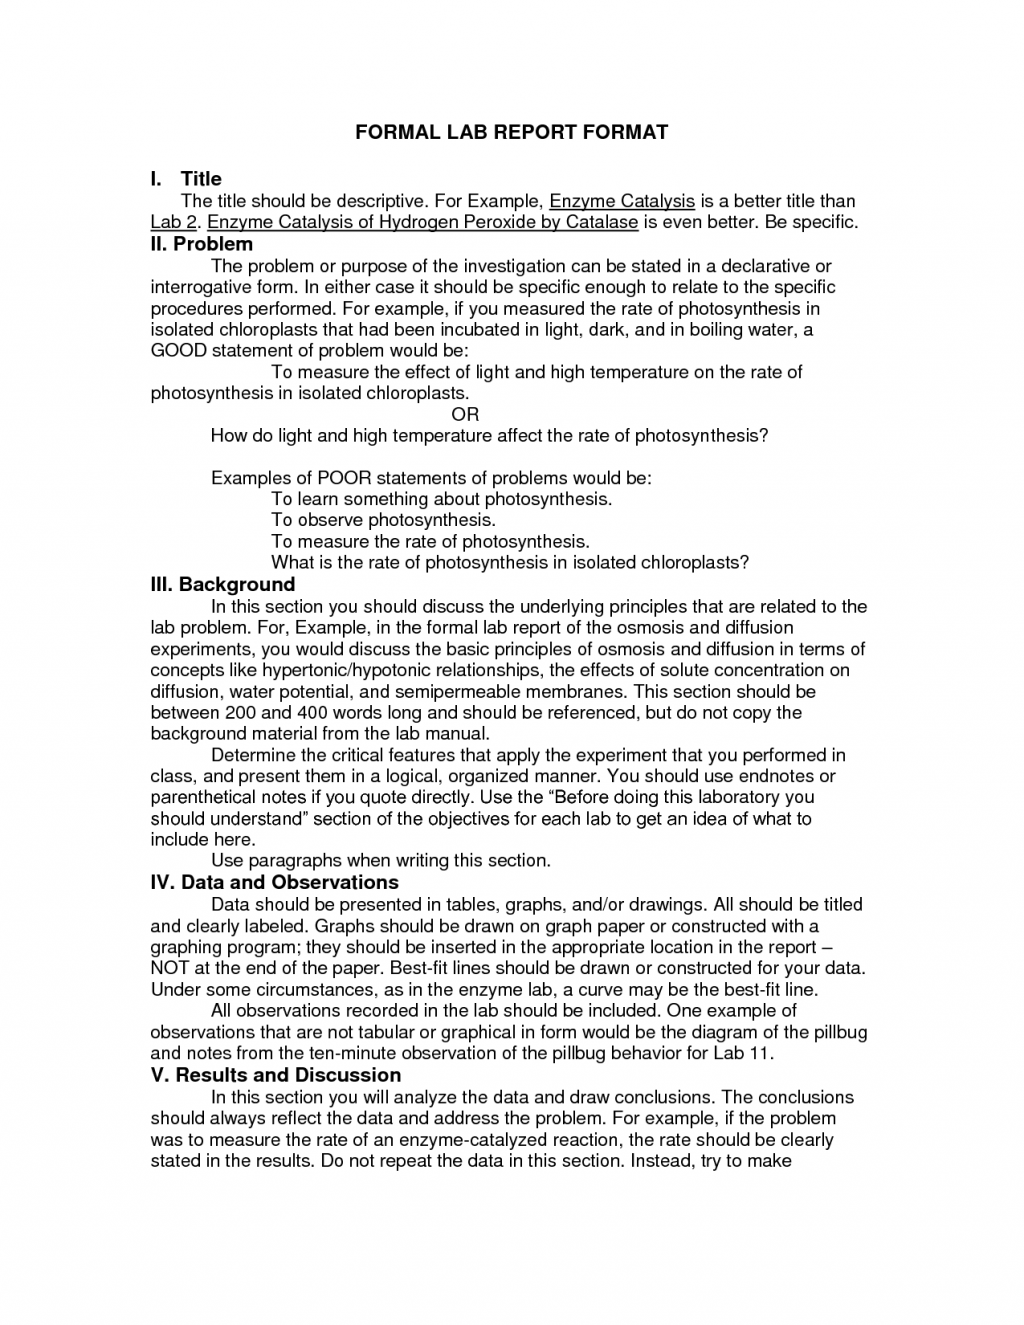 English Essay Writing Help Introspective Essay Formal Writing Professor Quality Good Science Essay Topics also Columbia Business School Essay How To Write A Report Essay  Mistyhamel Important Of English Language Essay